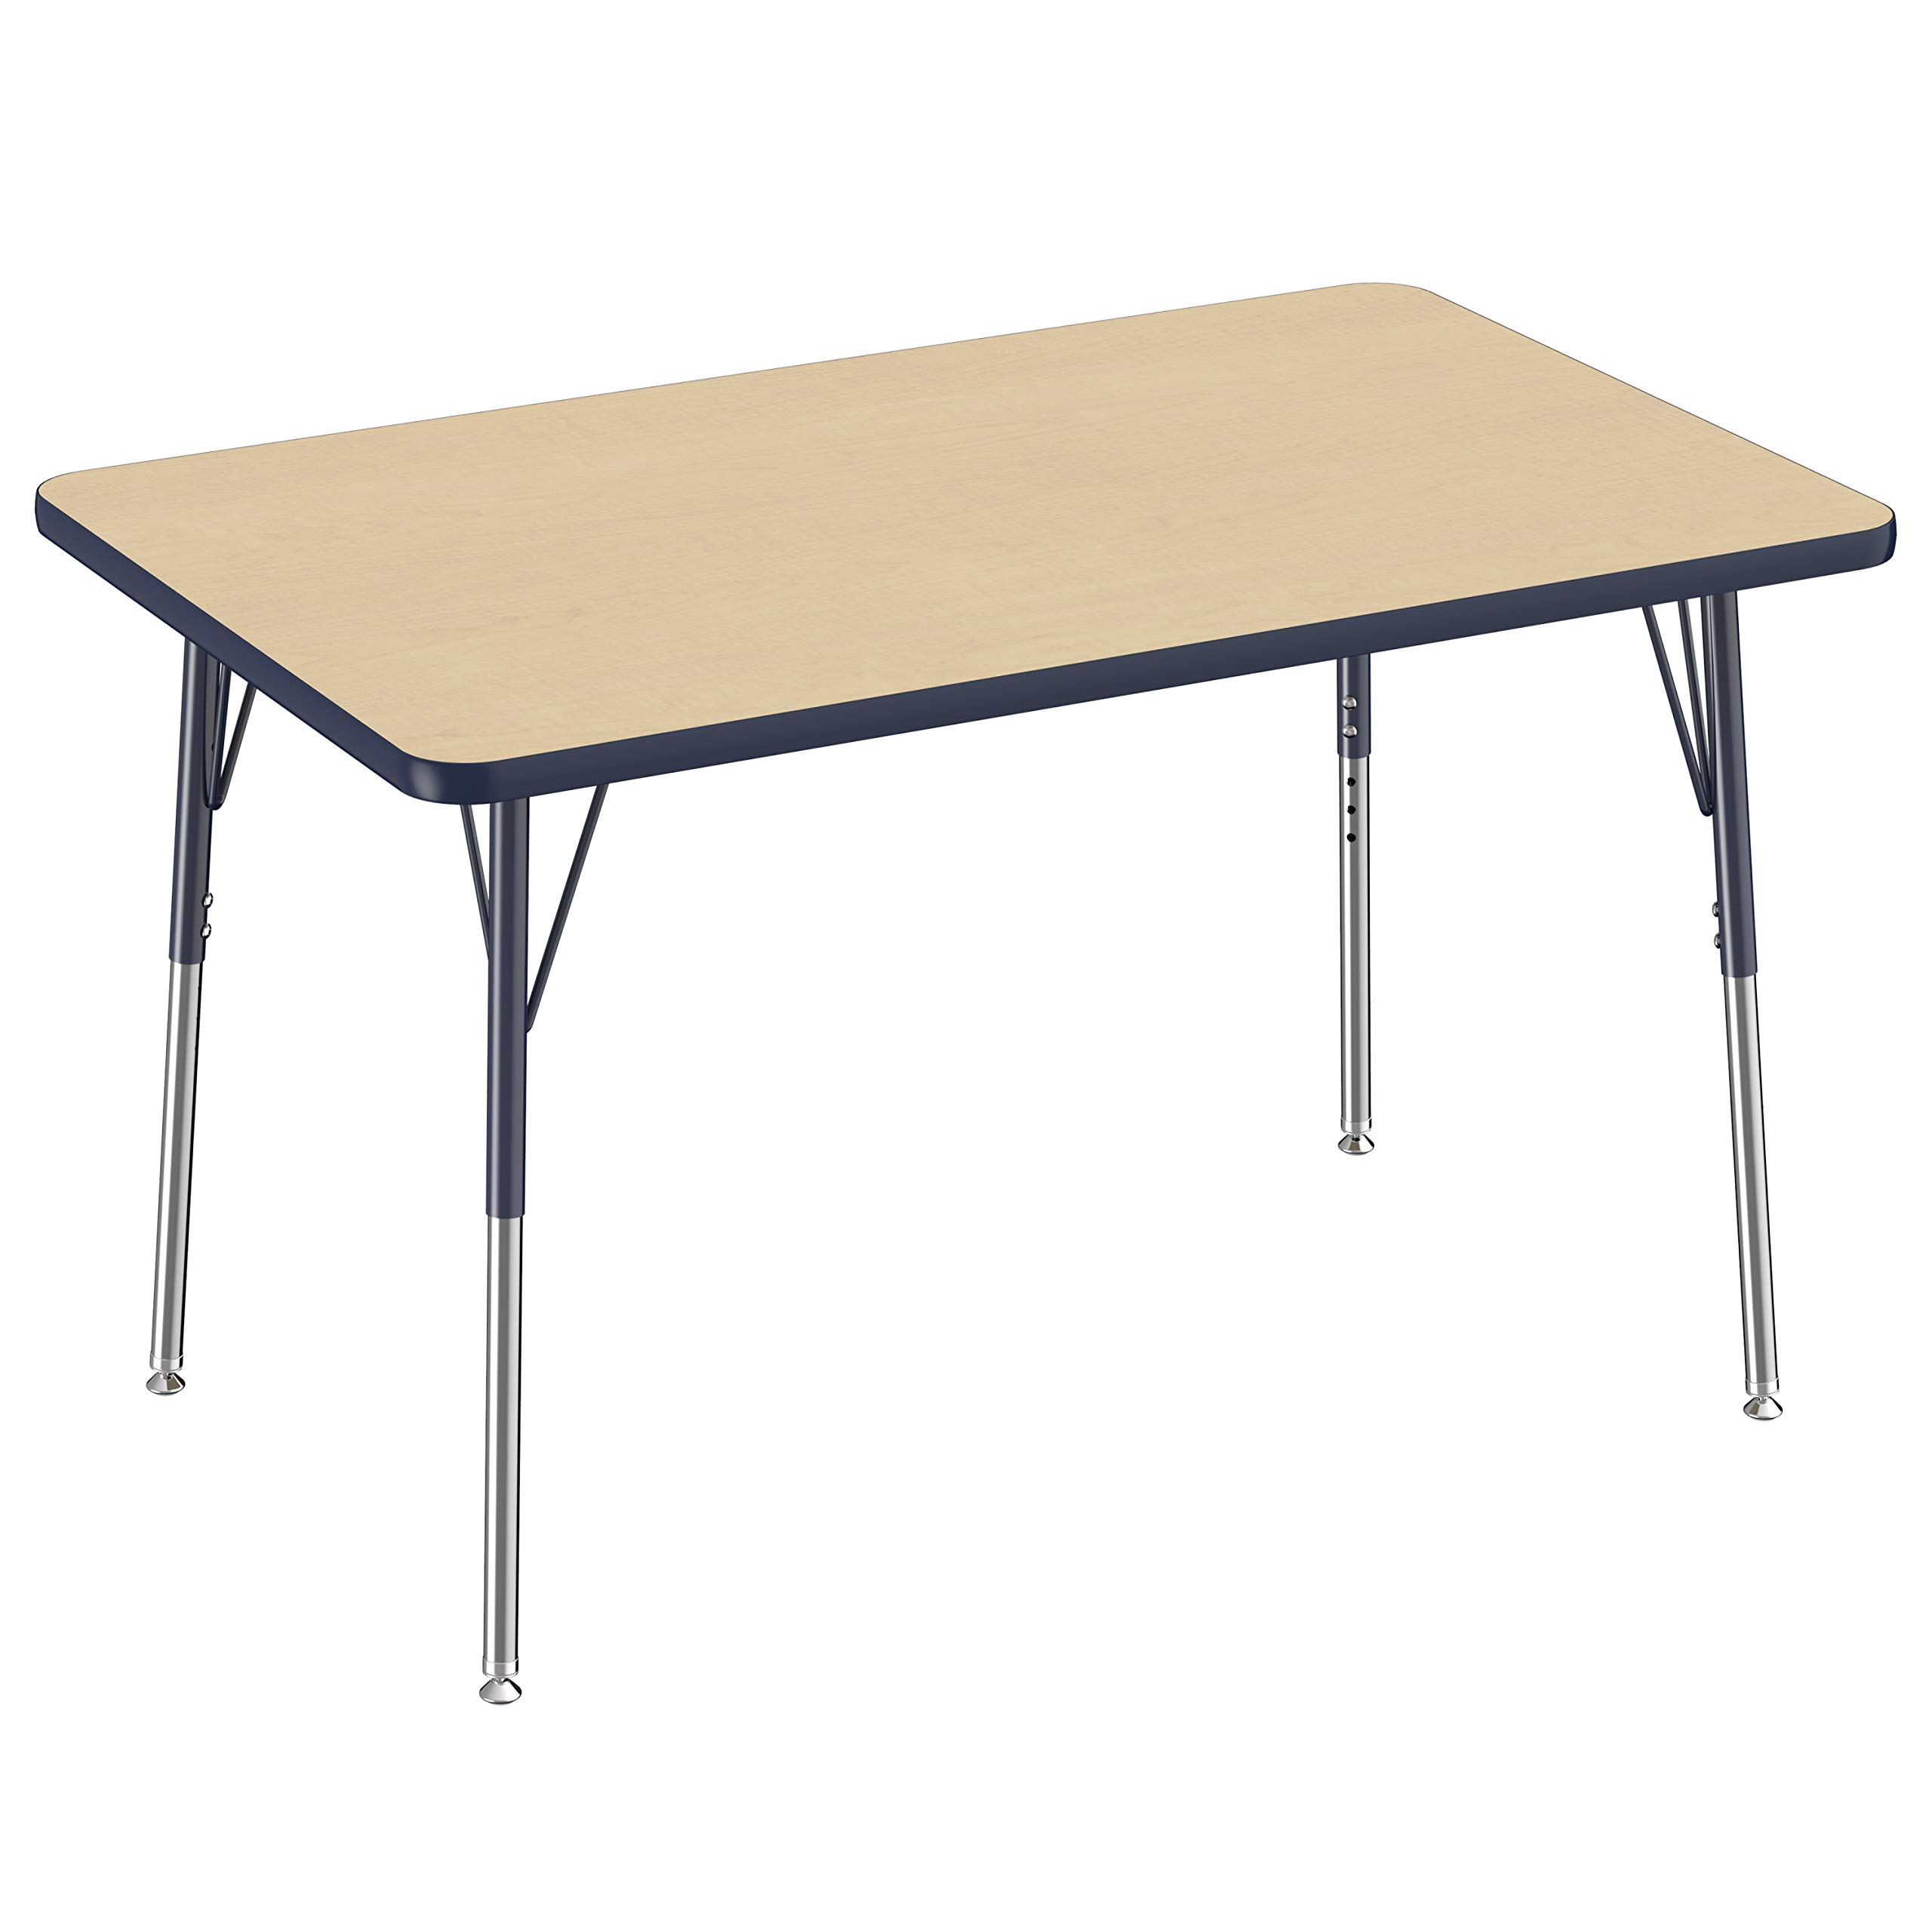 FDP Rectangle Activity School and Office Table (30 x 48 inch), Standard Legs with Swivel Glides, Adjustable Height 19-30 inches - Maple Top and Navy Edge